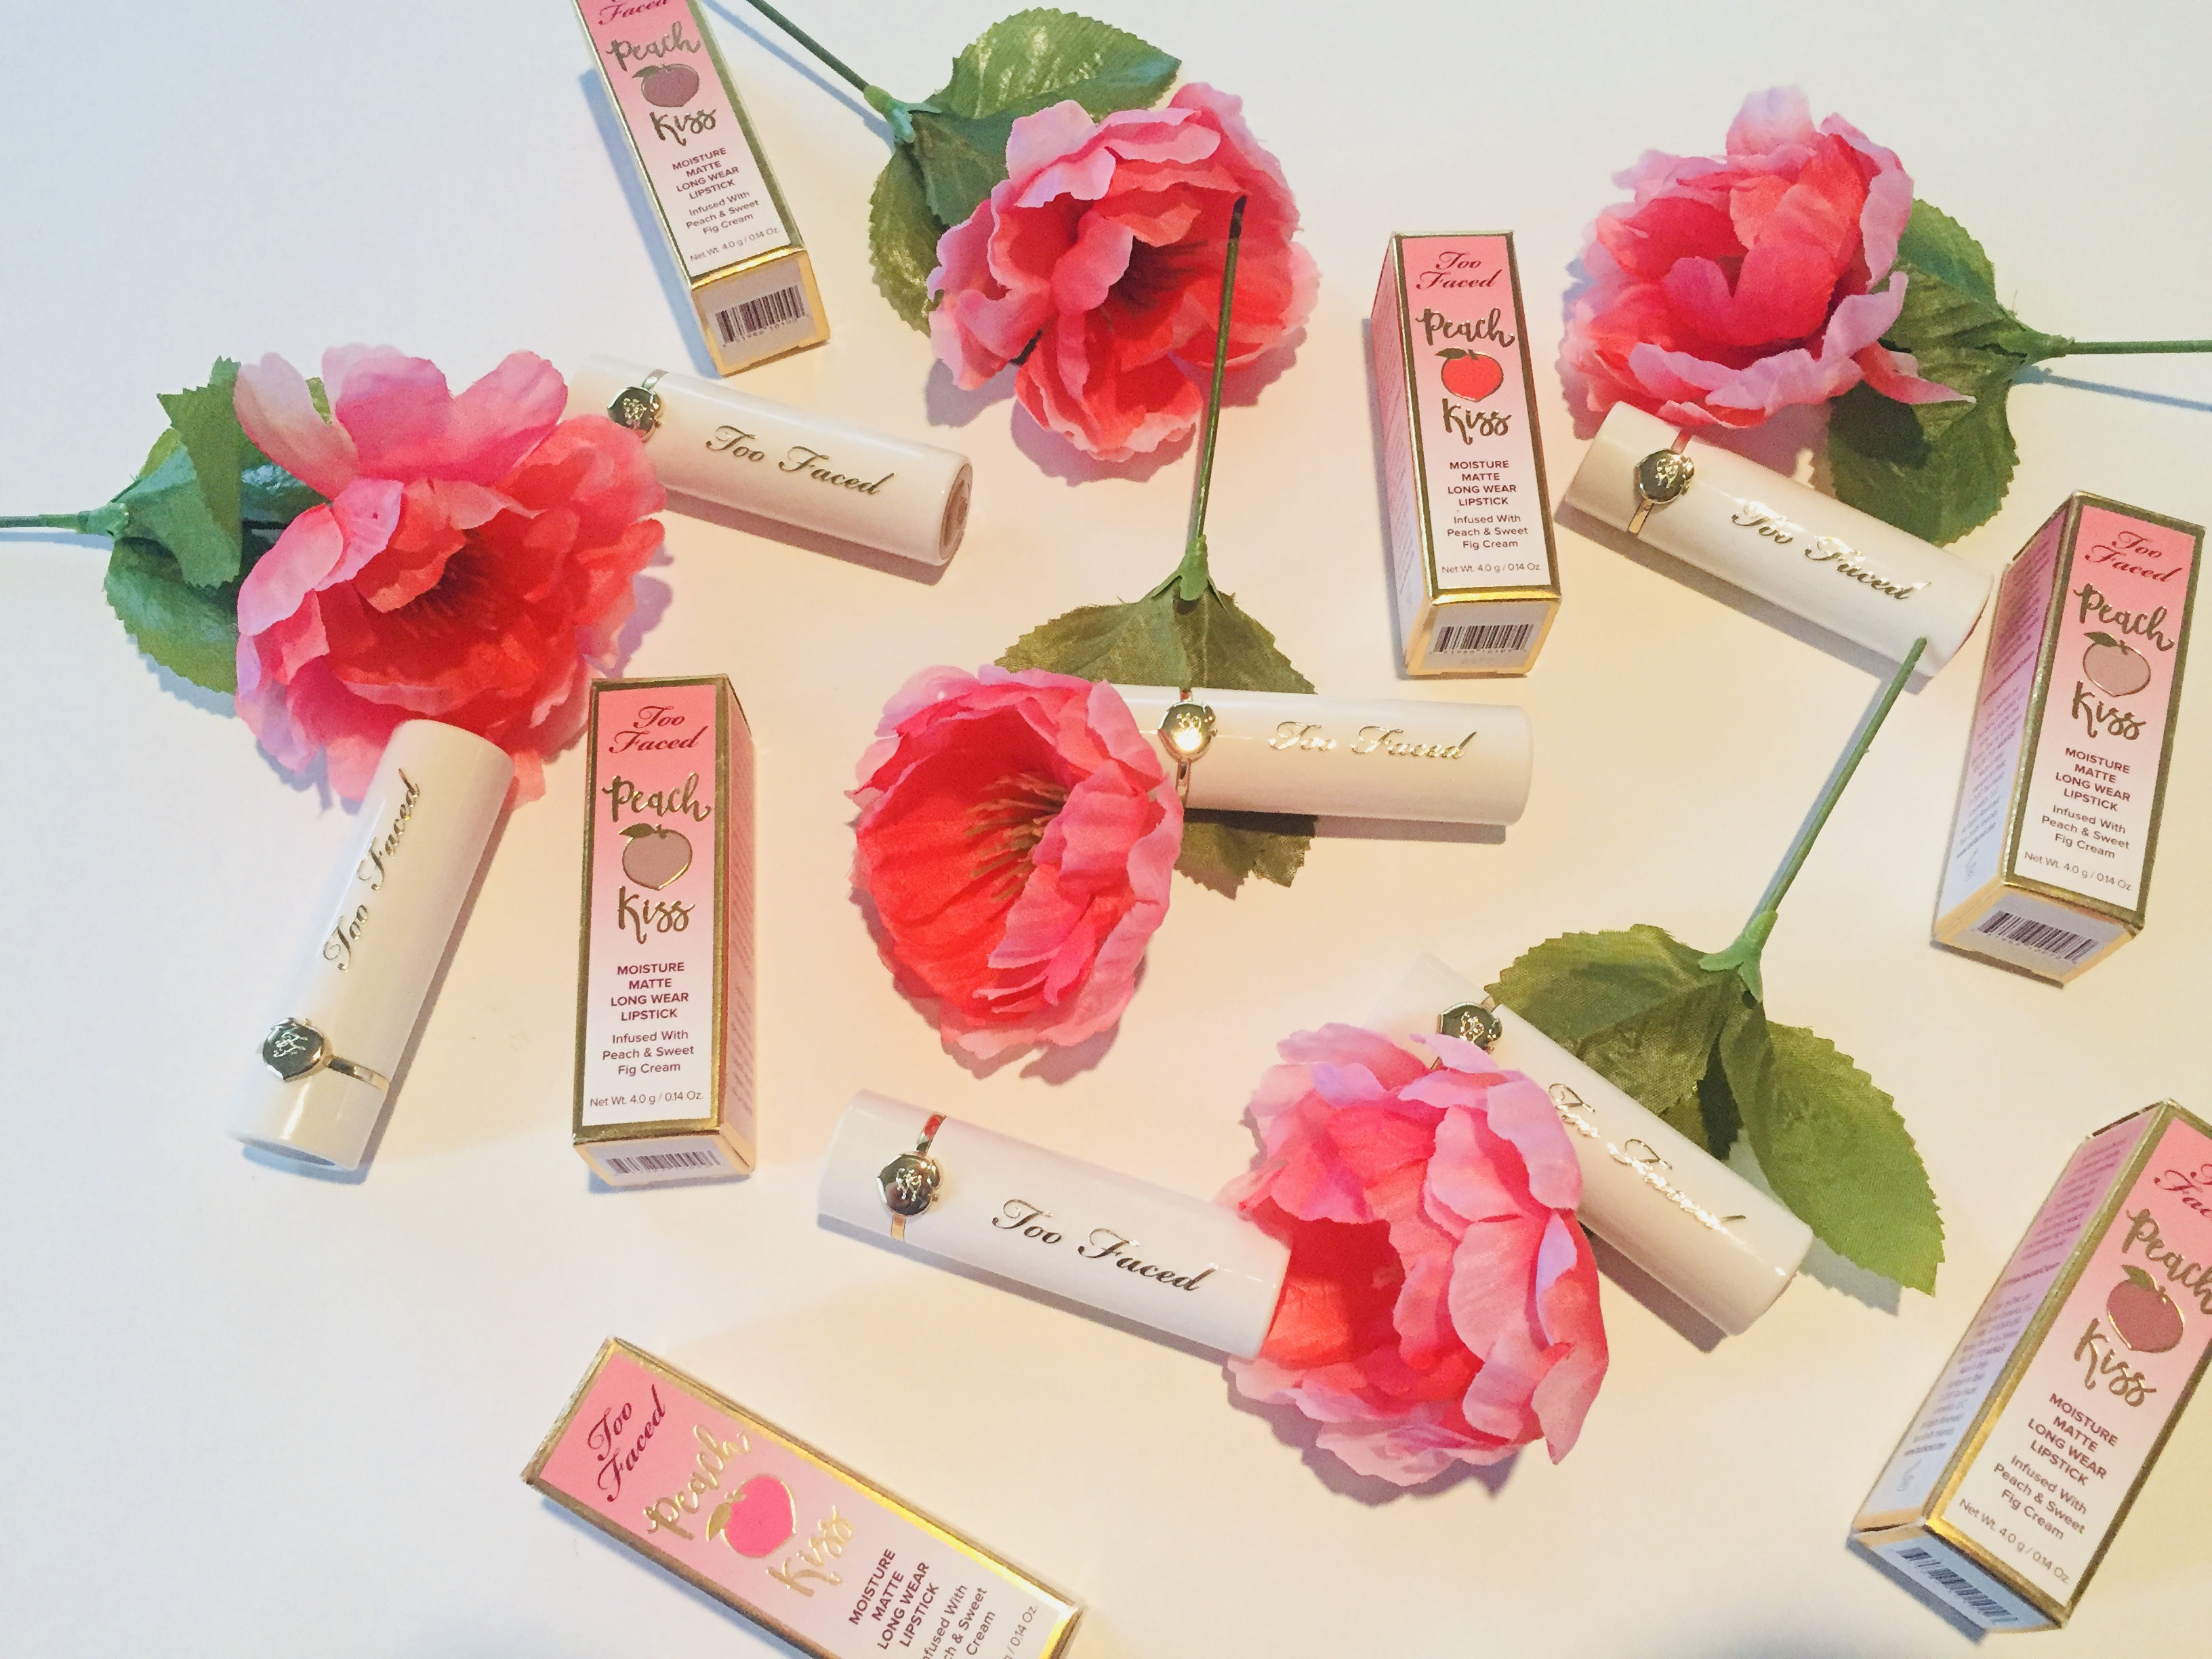 Too Faced Peach Kiss Lipstick Review | Tayler's Edit